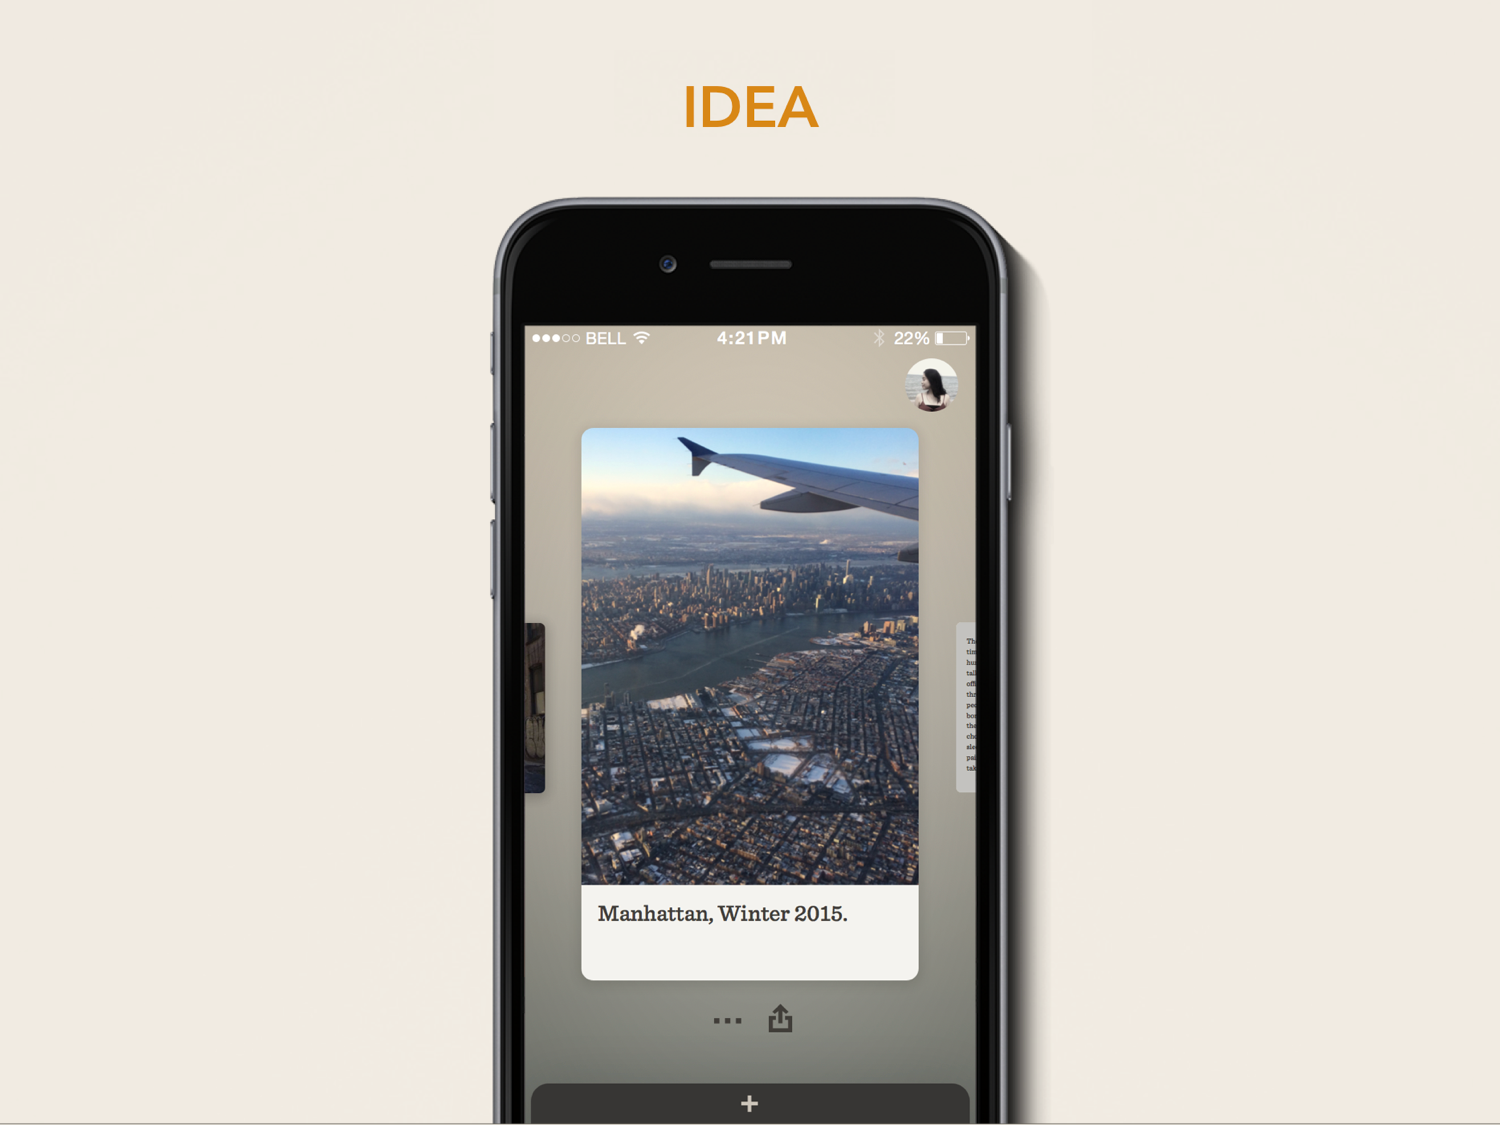 Ideas are represented as cards. Swipe to cycle through them.